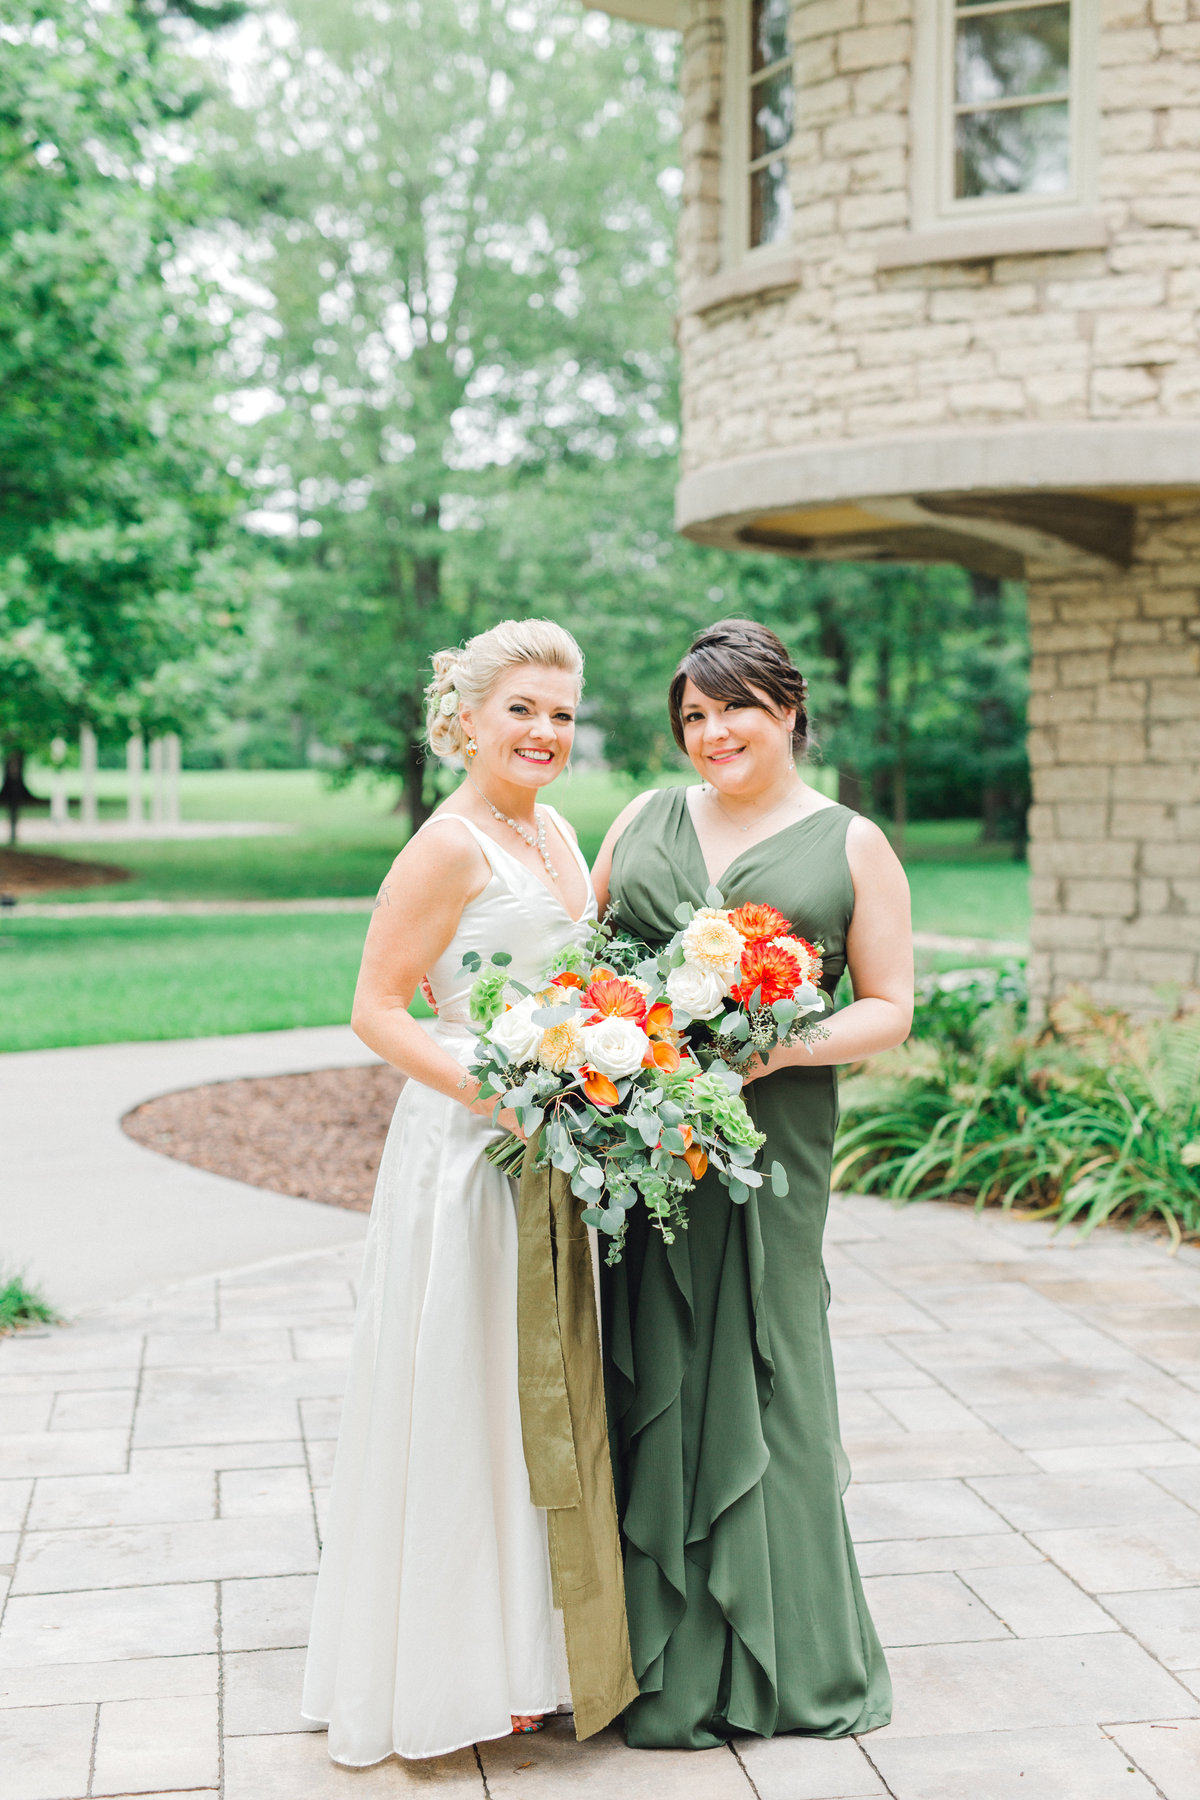 Ned-Ashton-House-Wedding-Ellen+Mack-3455